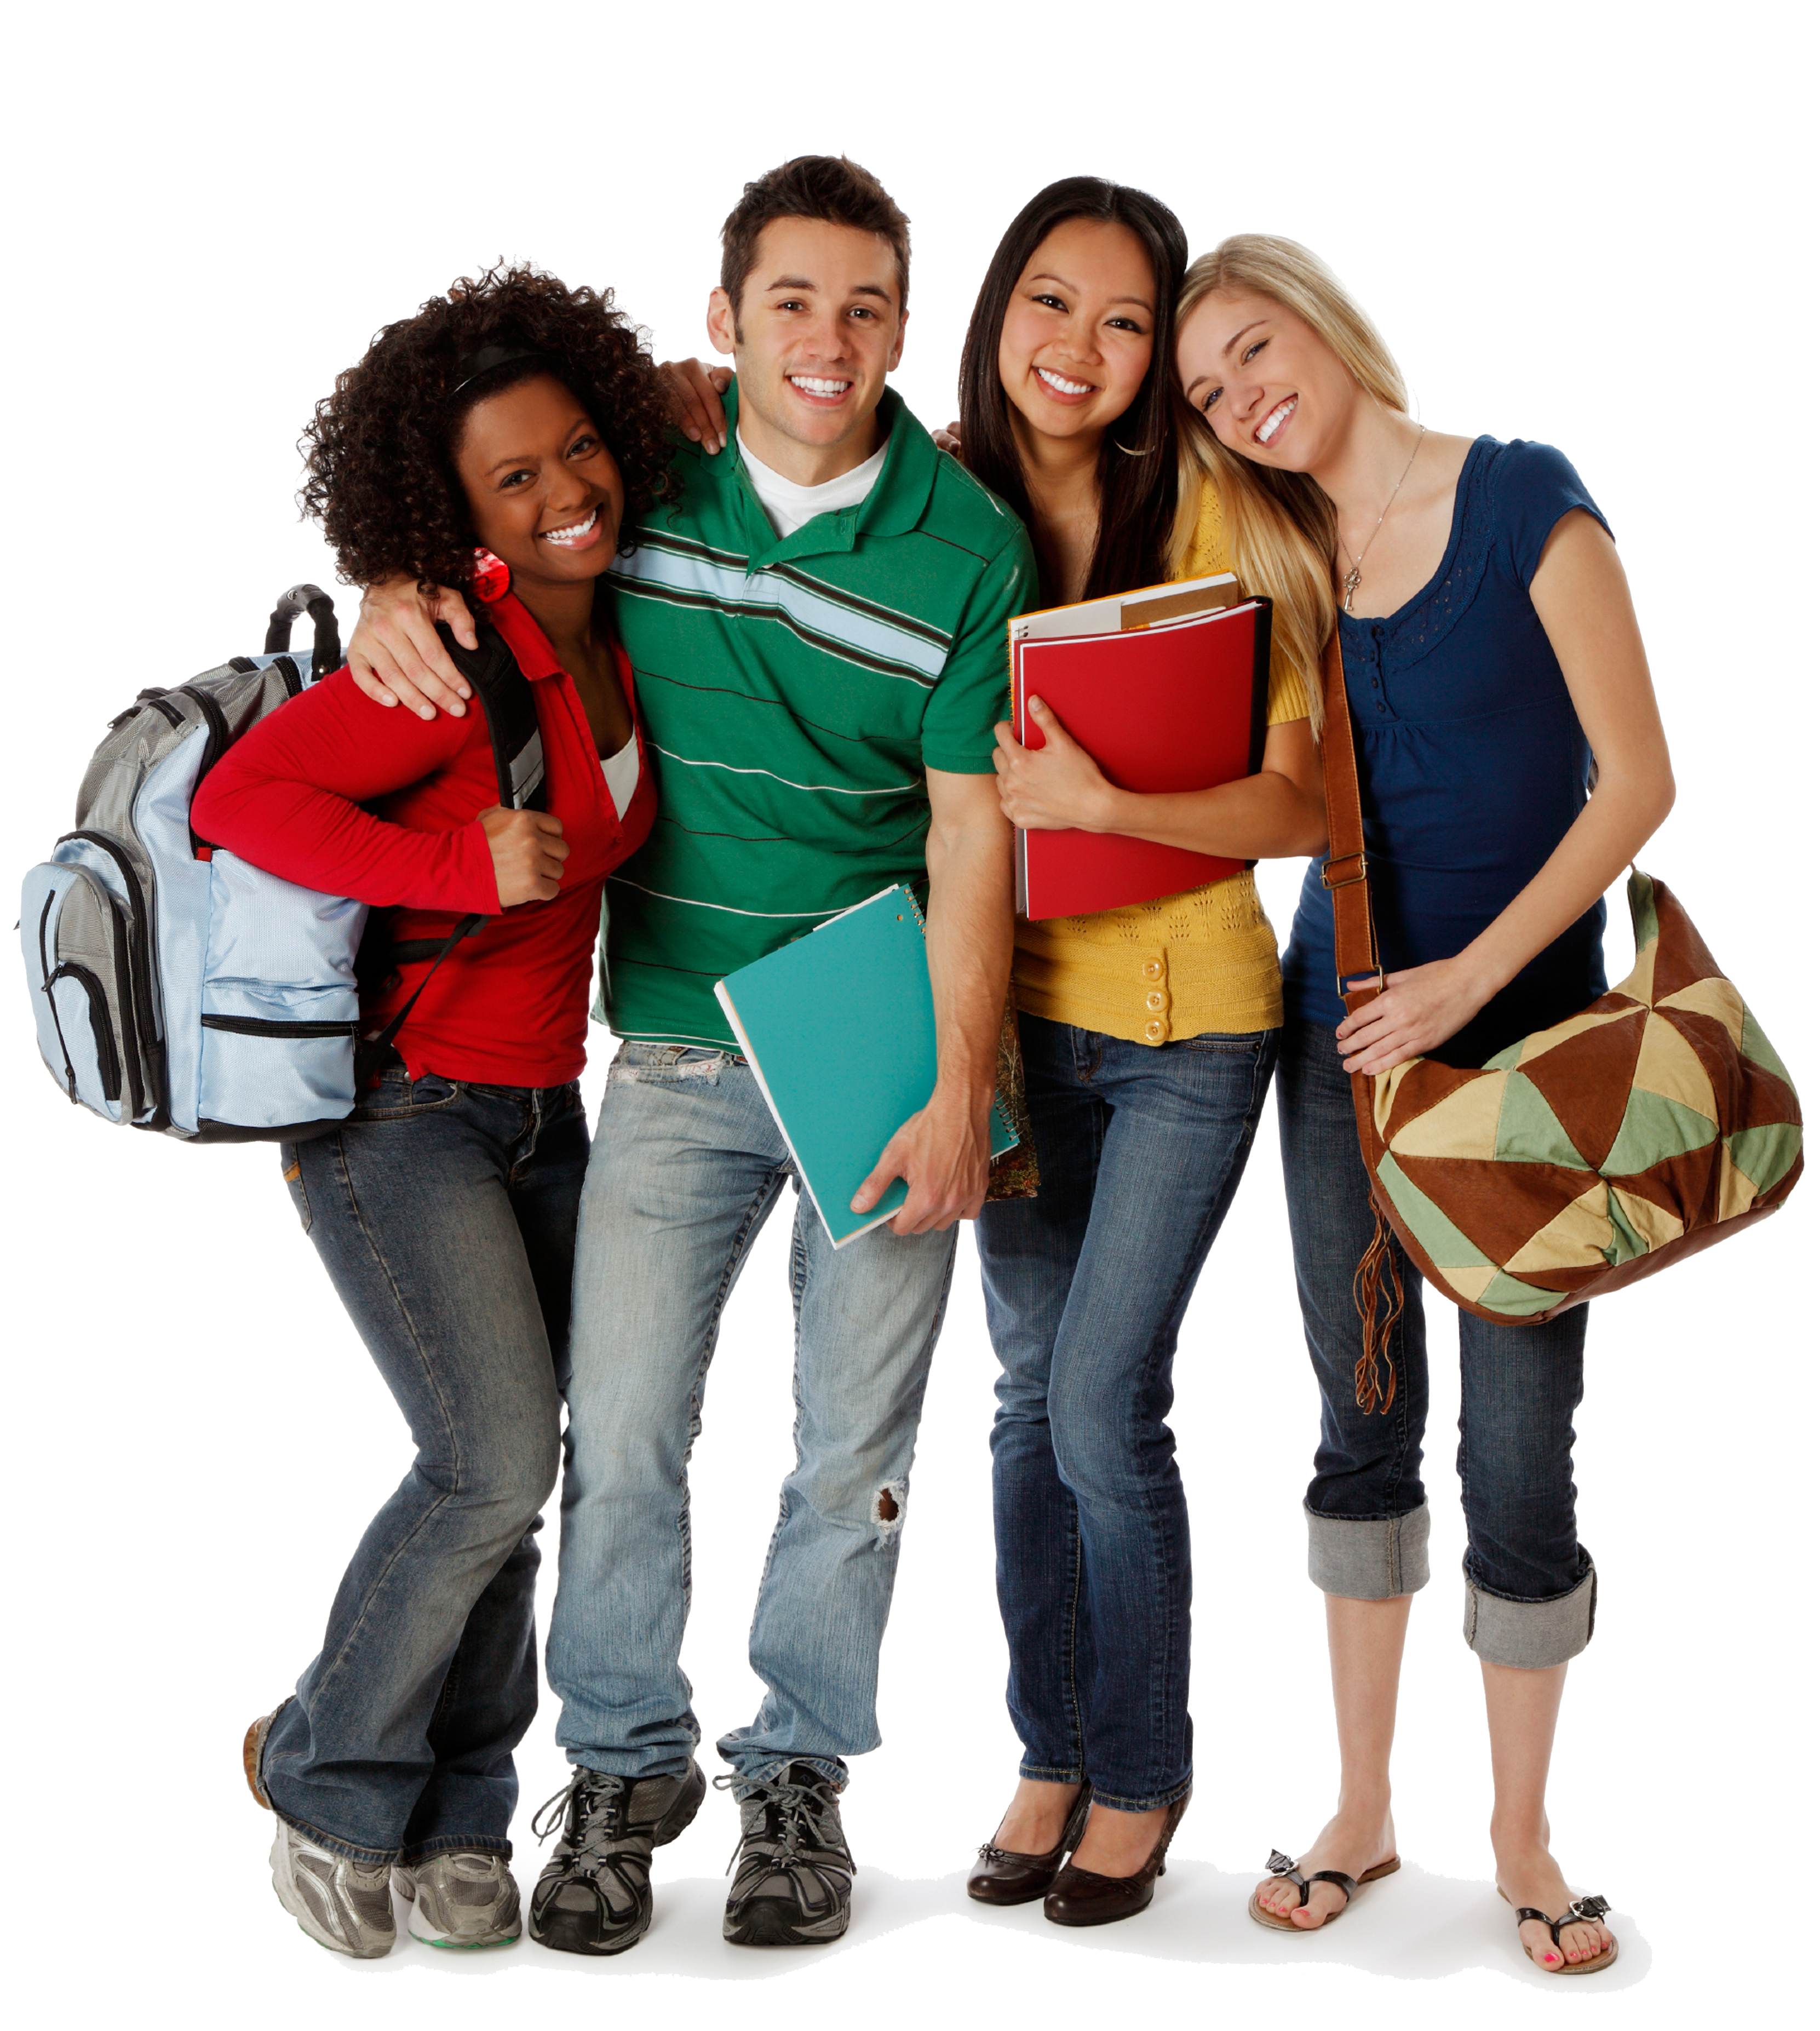 Student S Png Image Canadian Universities Online Education Dissertation Writing Services